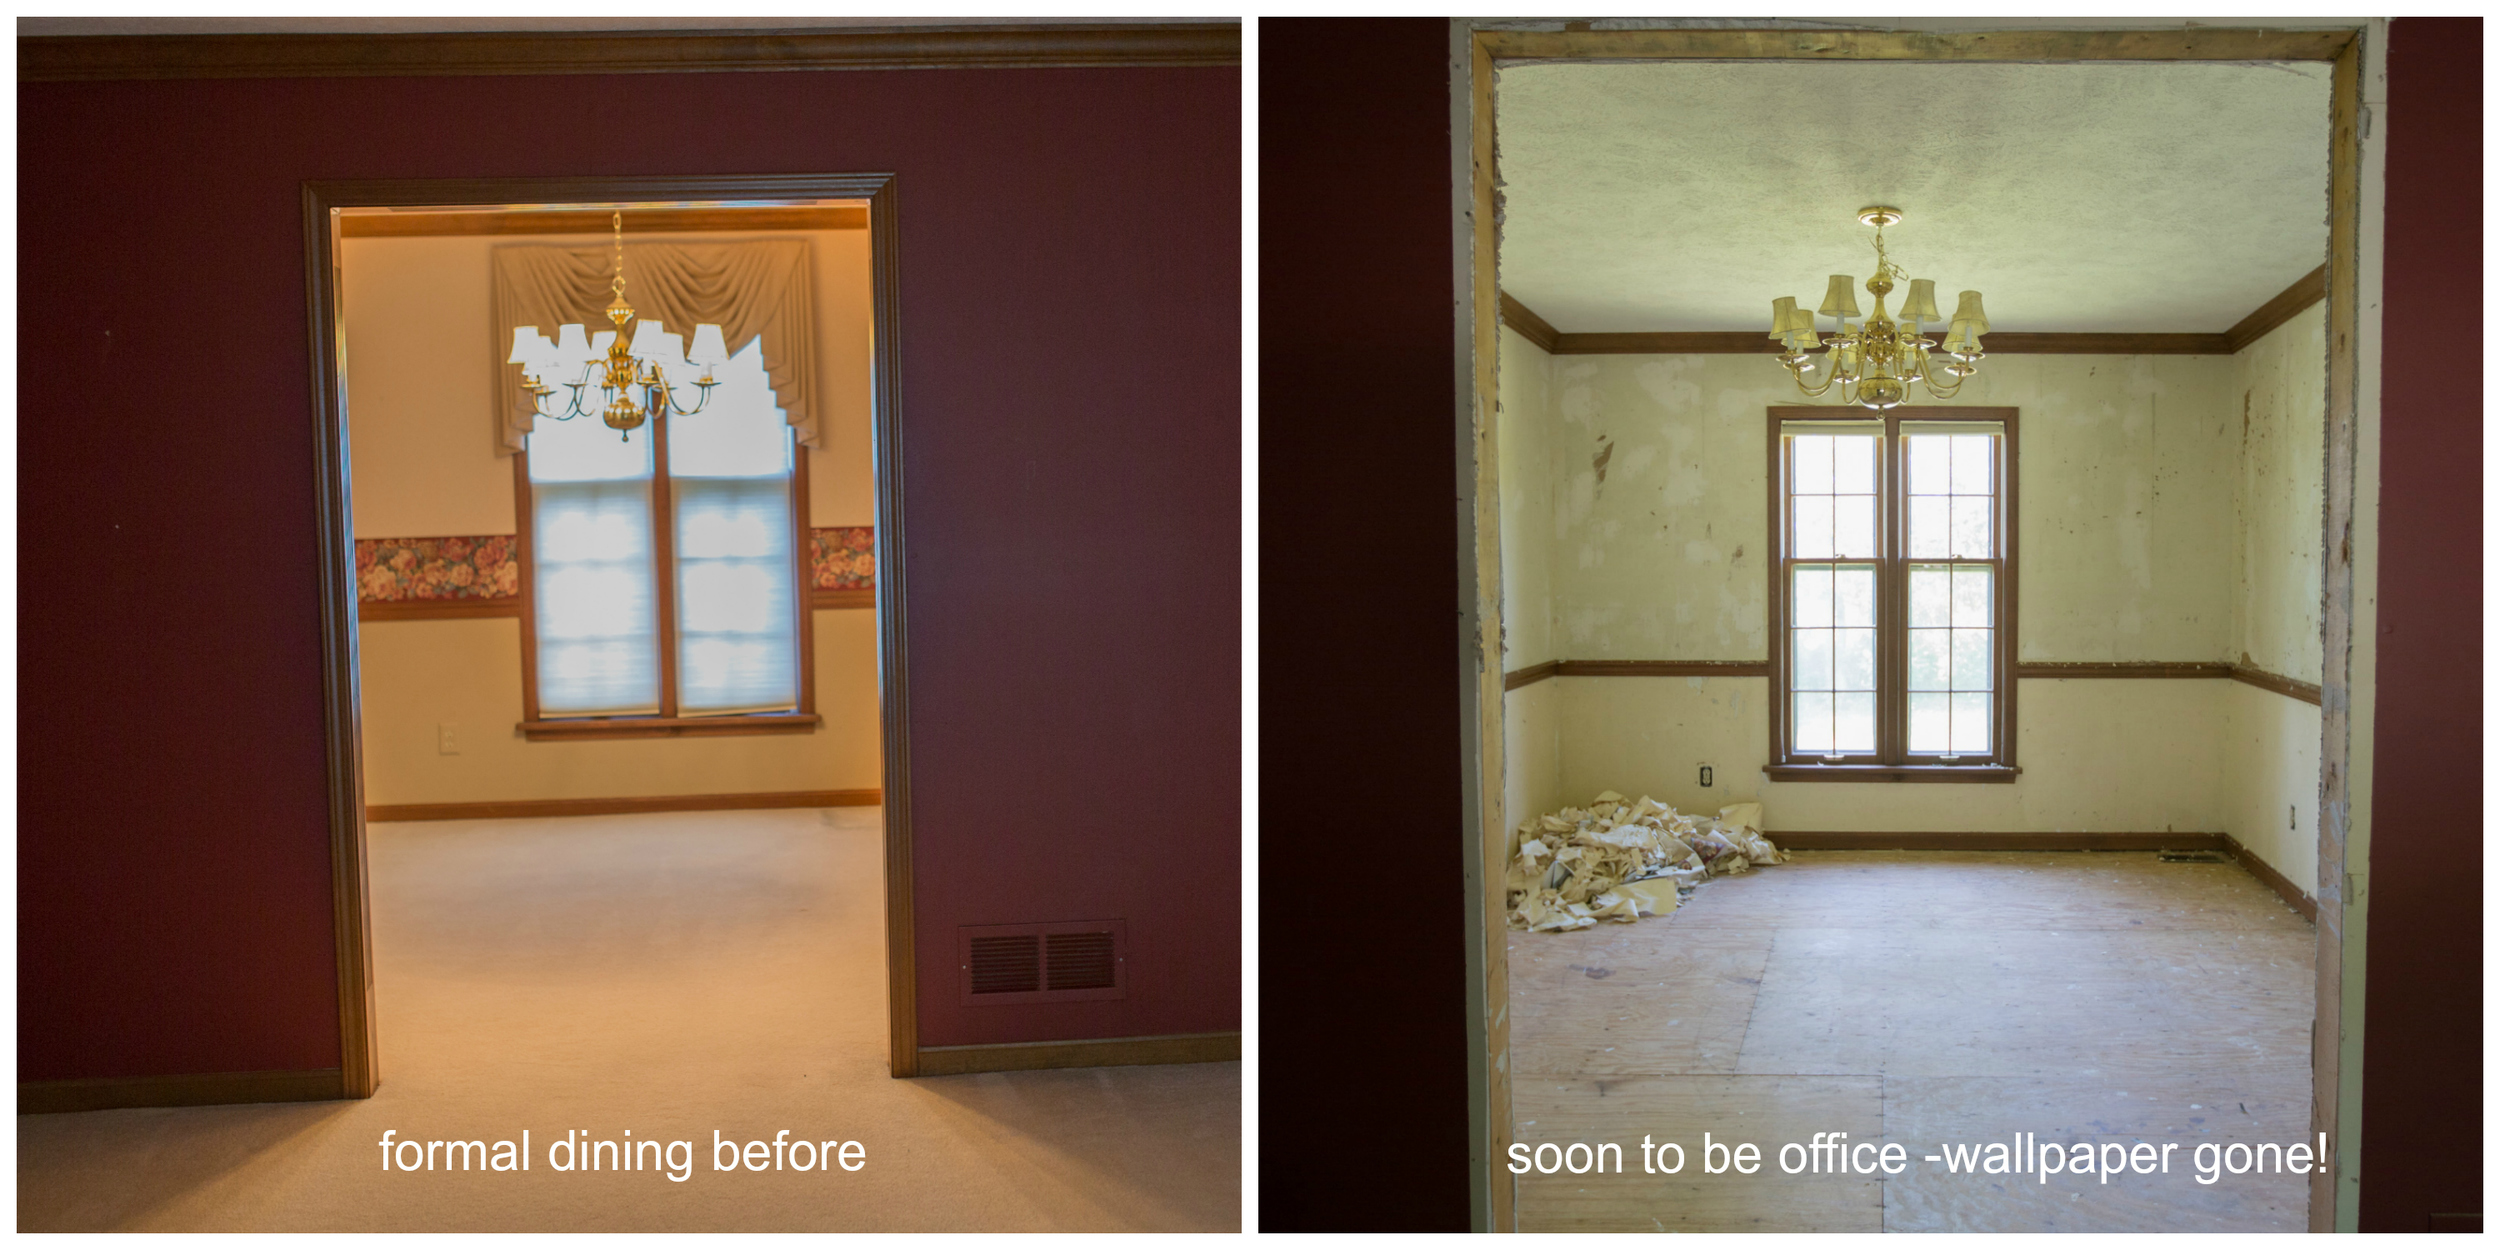 wallpaper removal in dining room which is being renovated